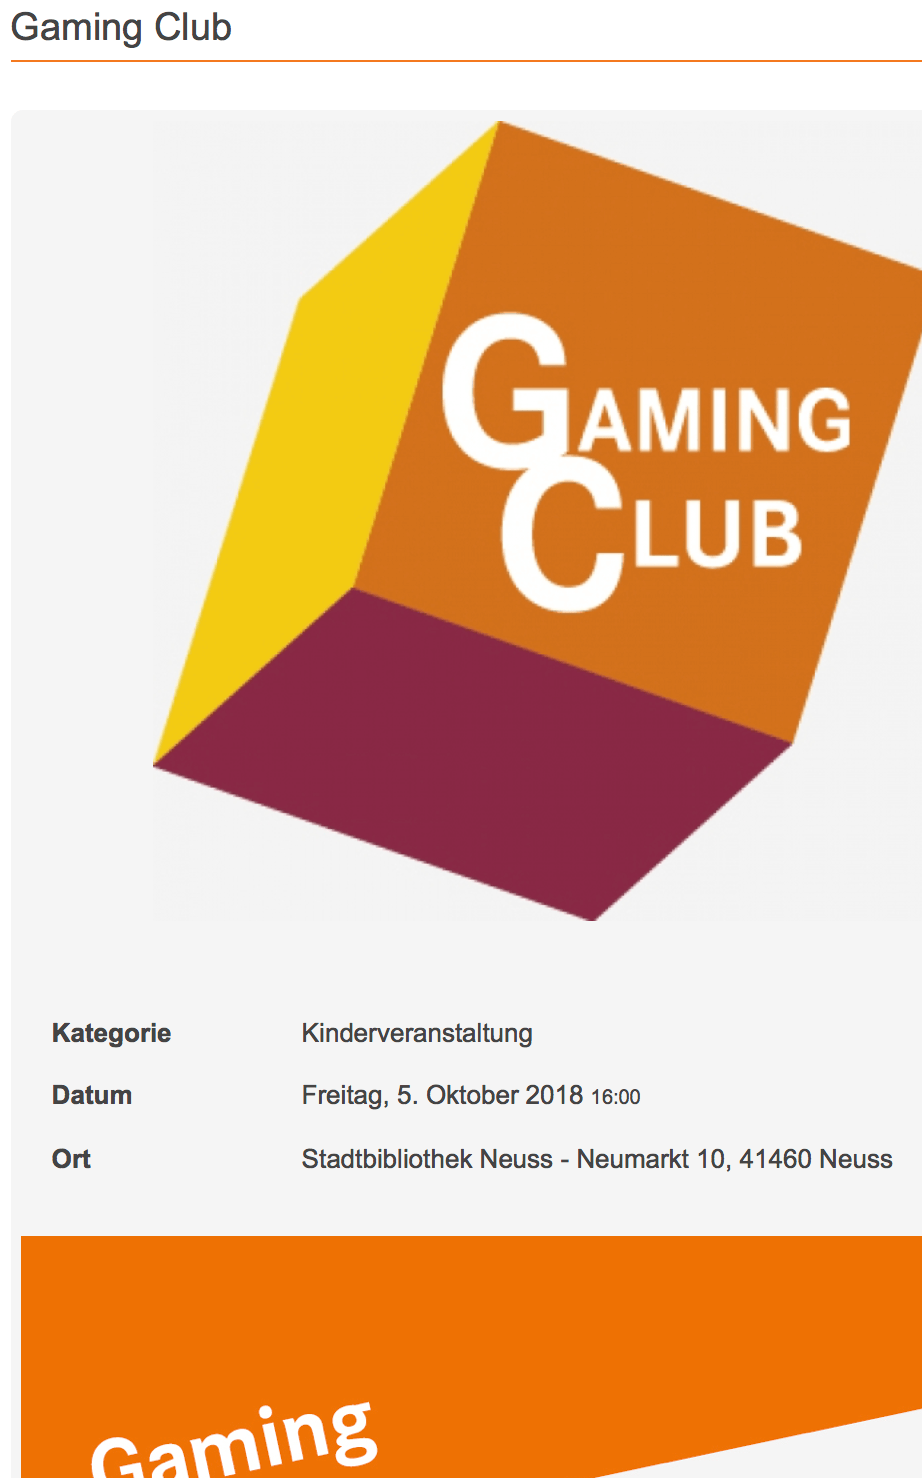 Gaming Club Projekthelden